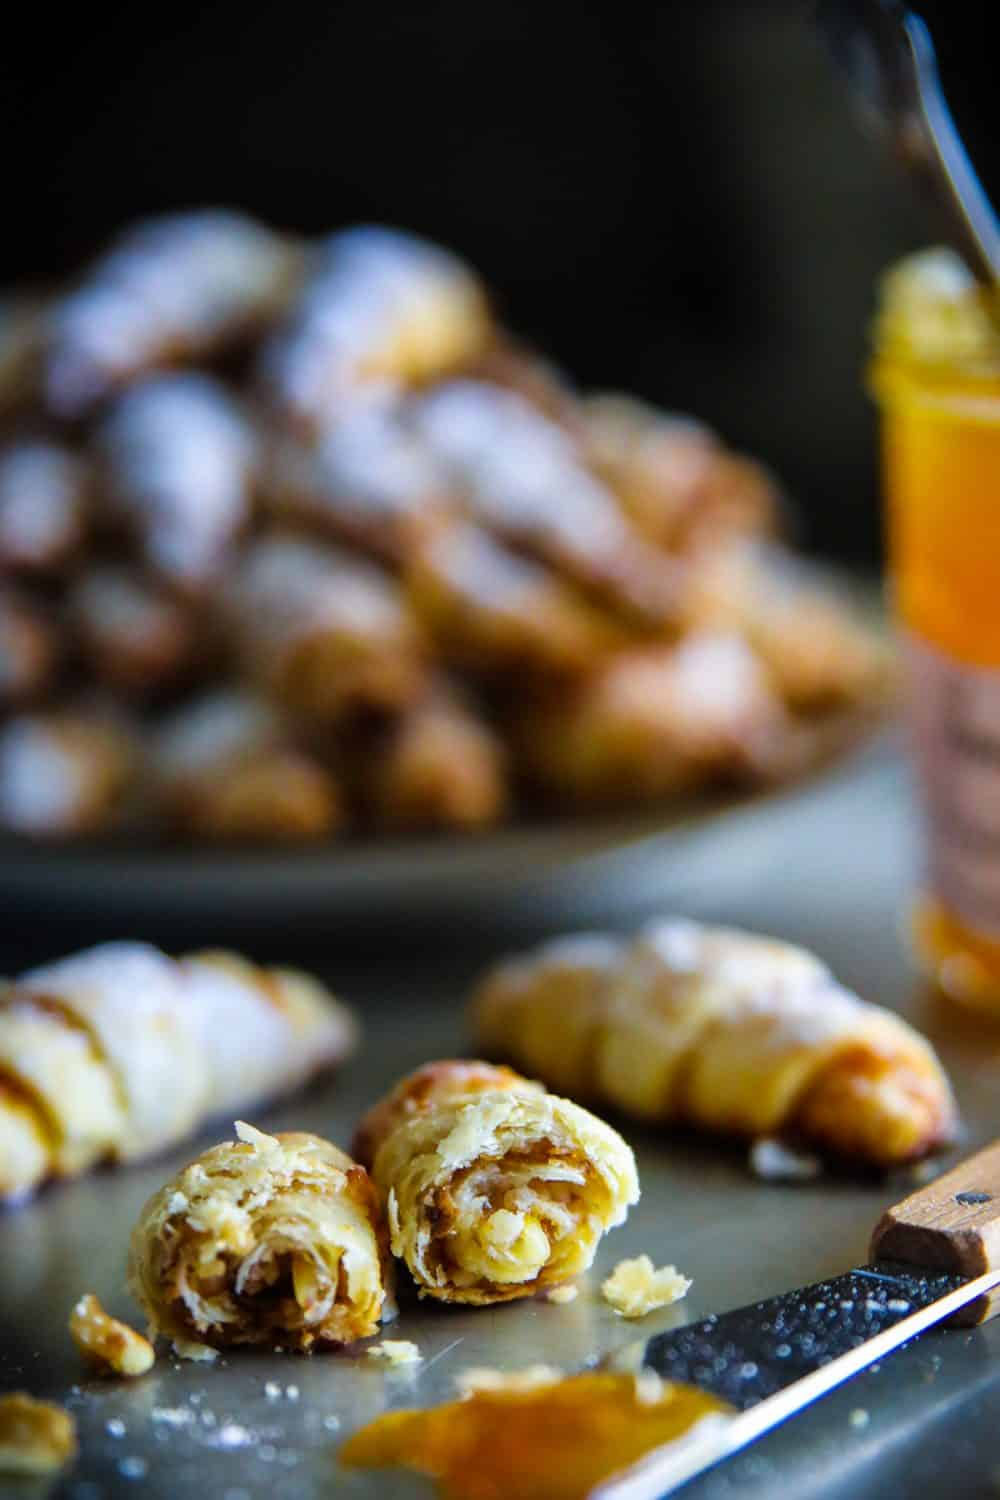 apricot walnut rugelach cookies sliced in half with apricot jam and a butter knife beside them